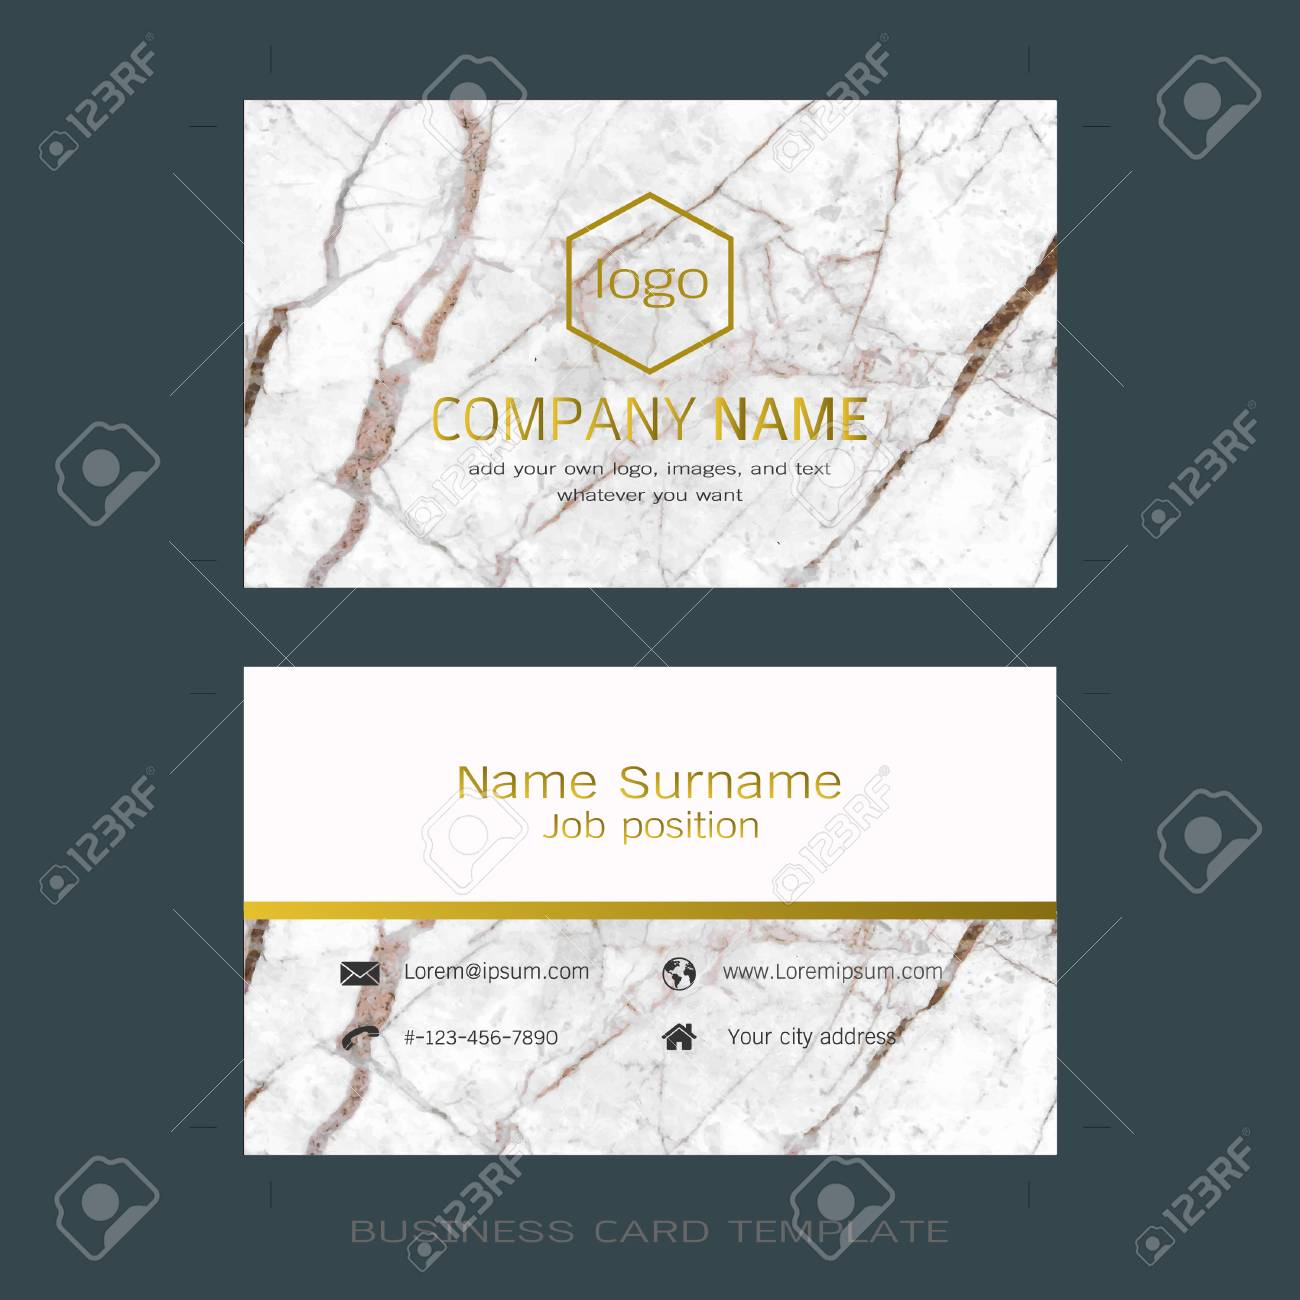 modern designer business card layout templates marble texture background easy to use by print